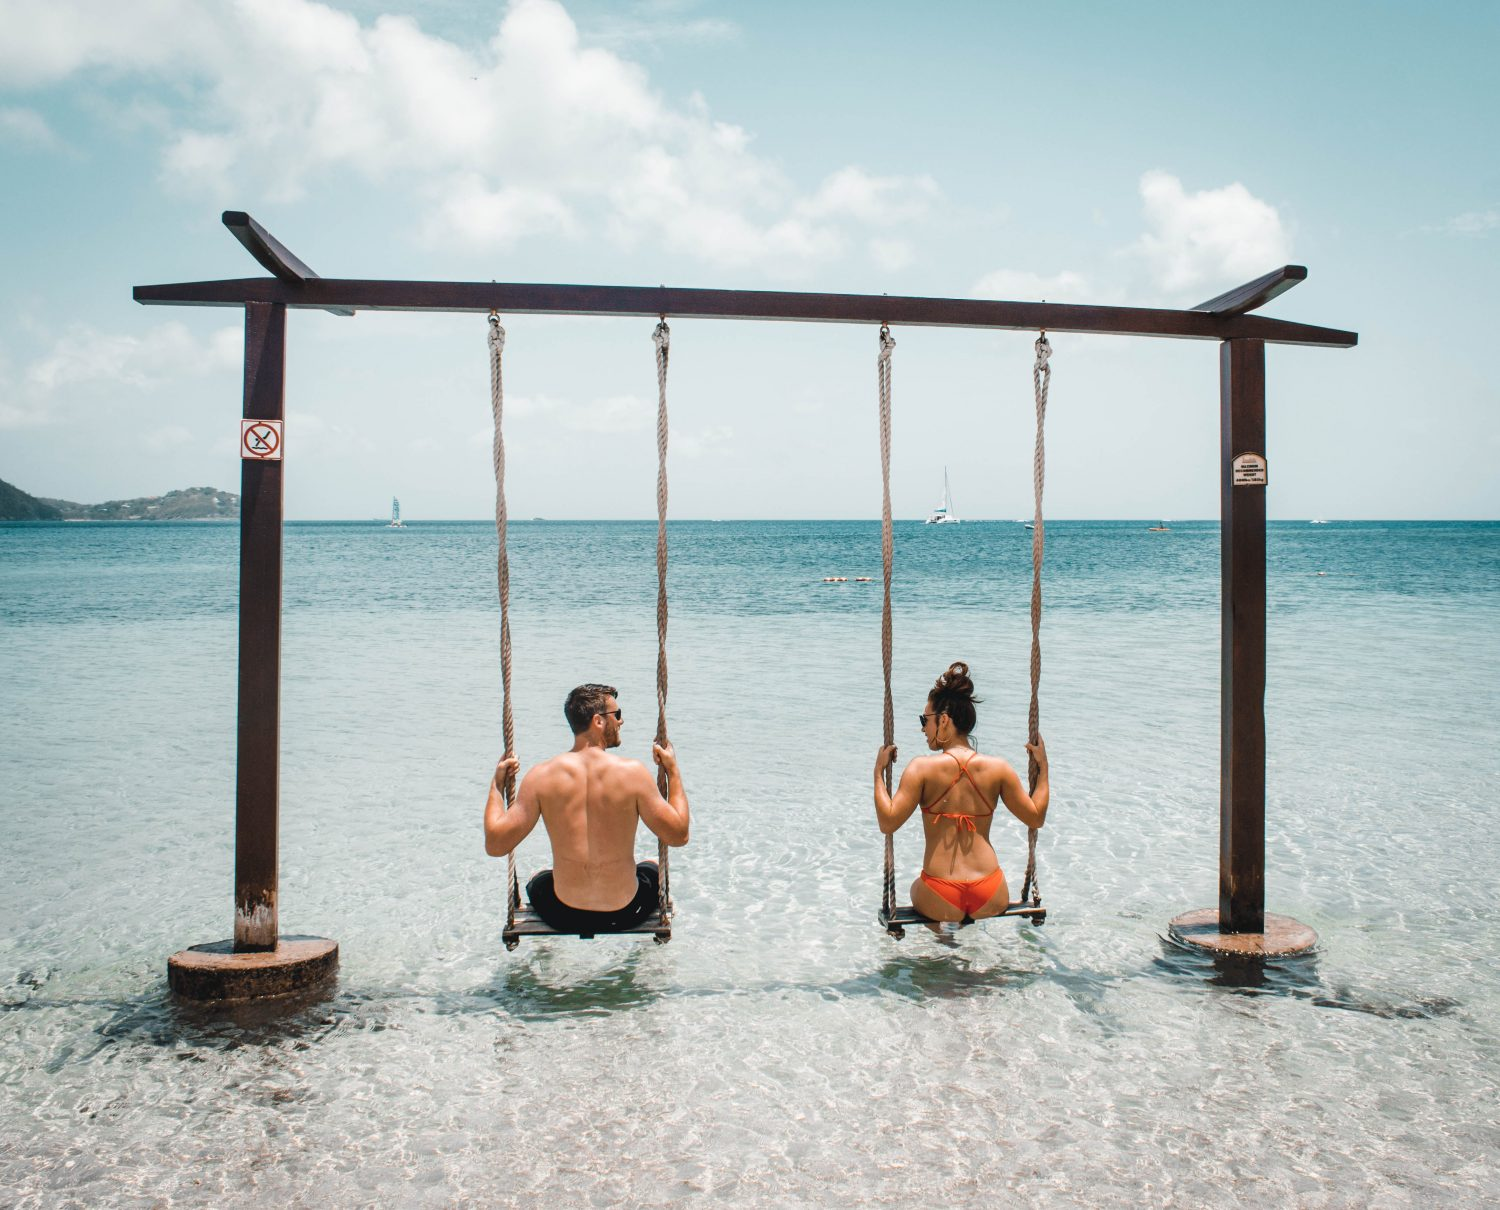 man and woman on swing on body of water